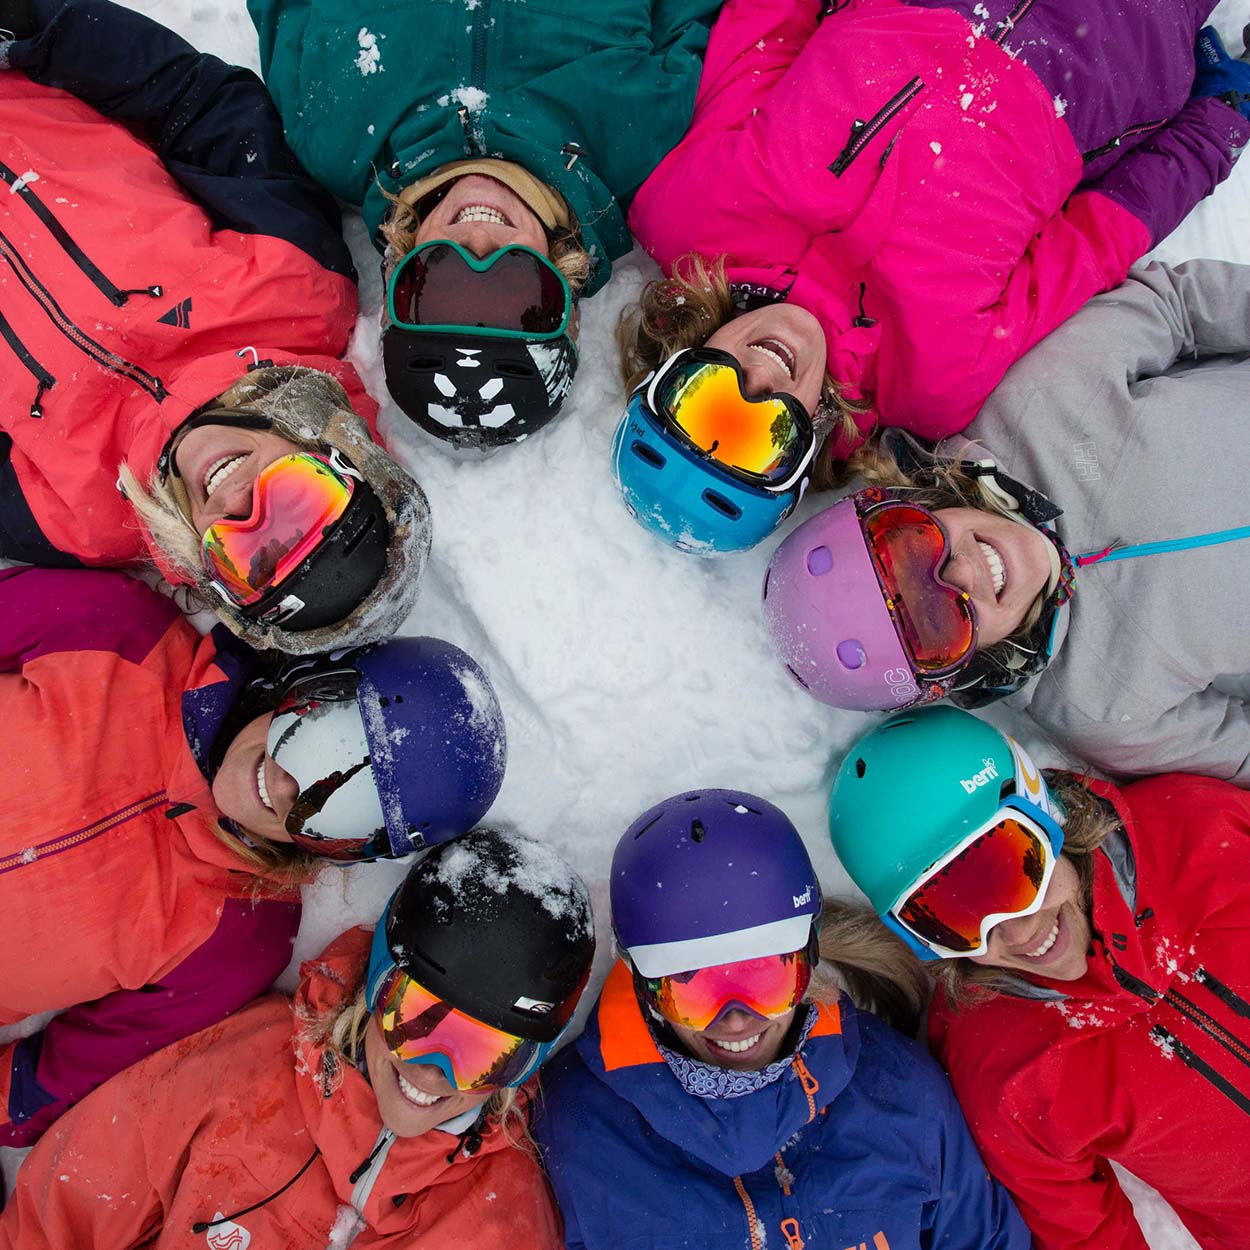 Smiling skiers lying in a circle on the snowy ground.